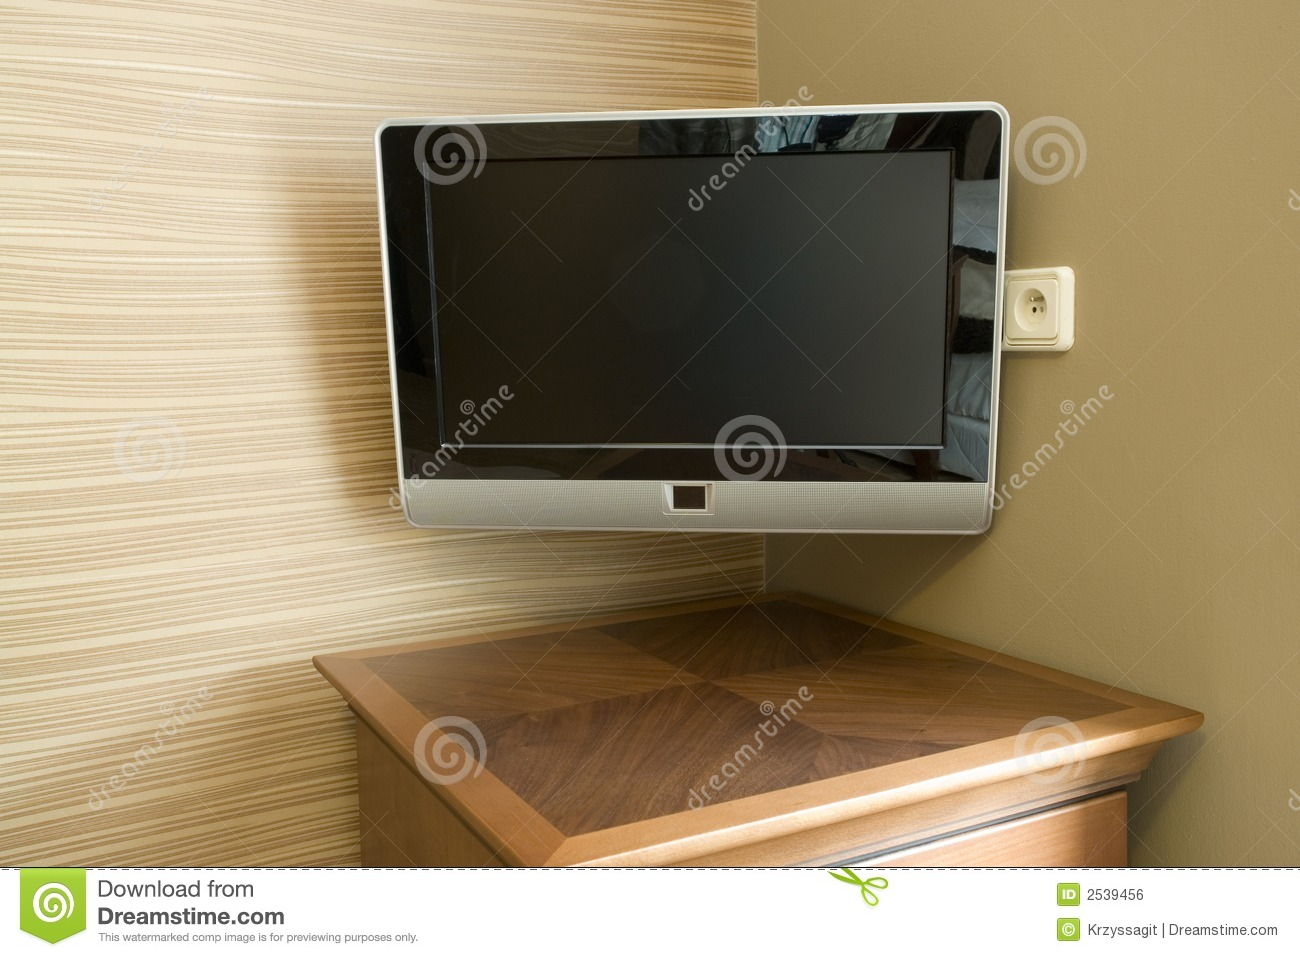 wall mounted tv stock photo image of monitor screen 2539456. Black Bedroom Furniture Sets. Home Design Ideas